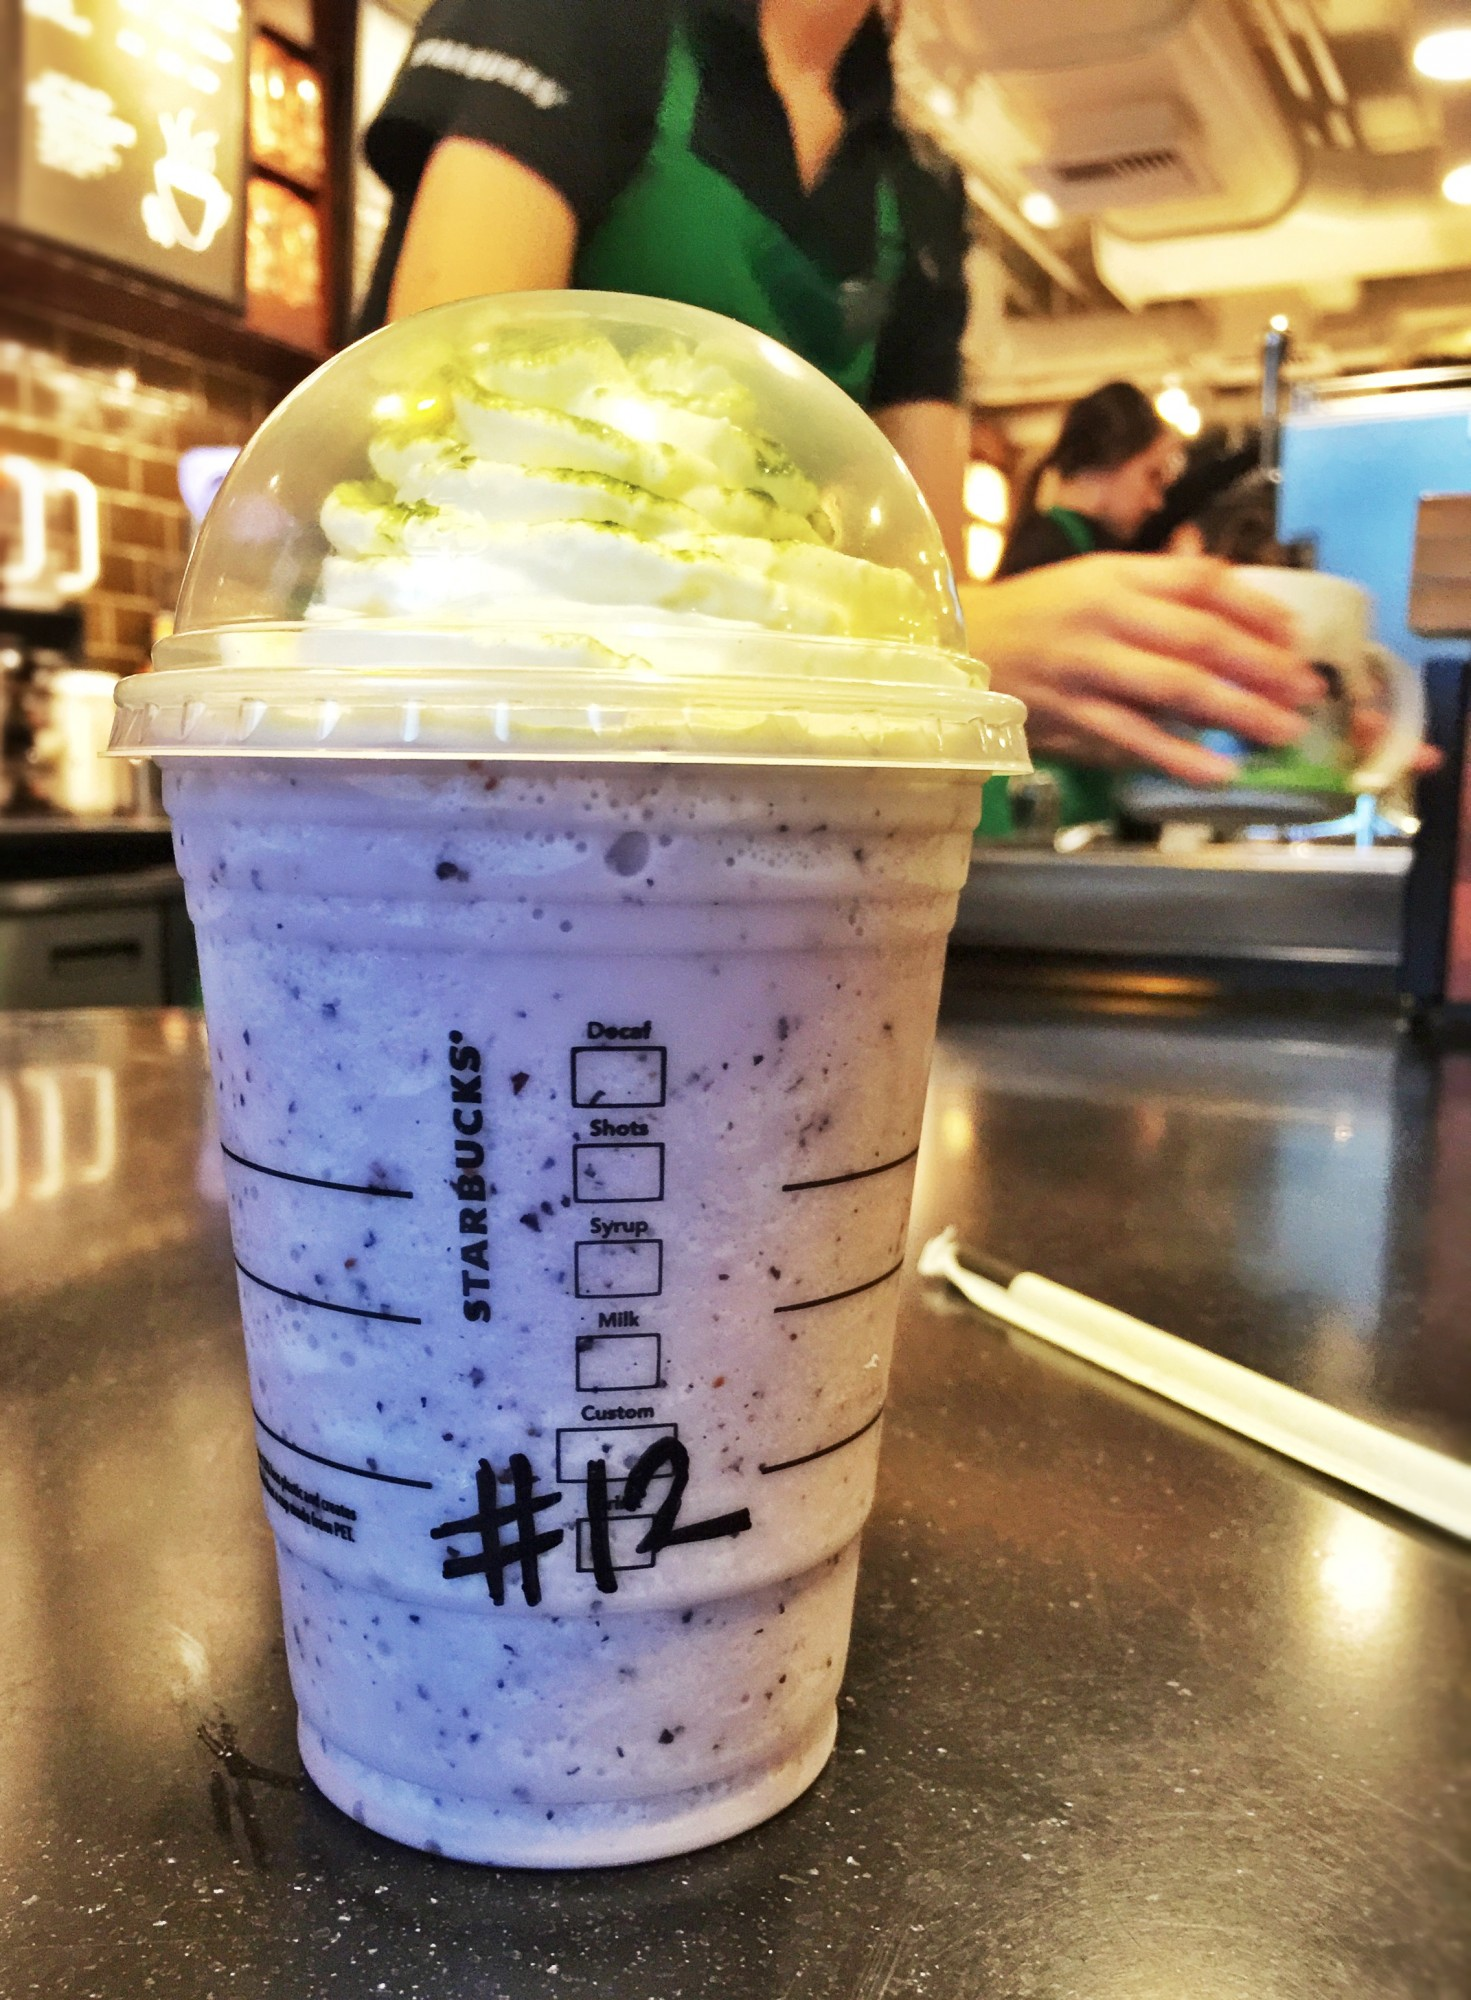 The Seahawks Frappuccino debuts Friday in honor of the team playing in the Super Bowl.